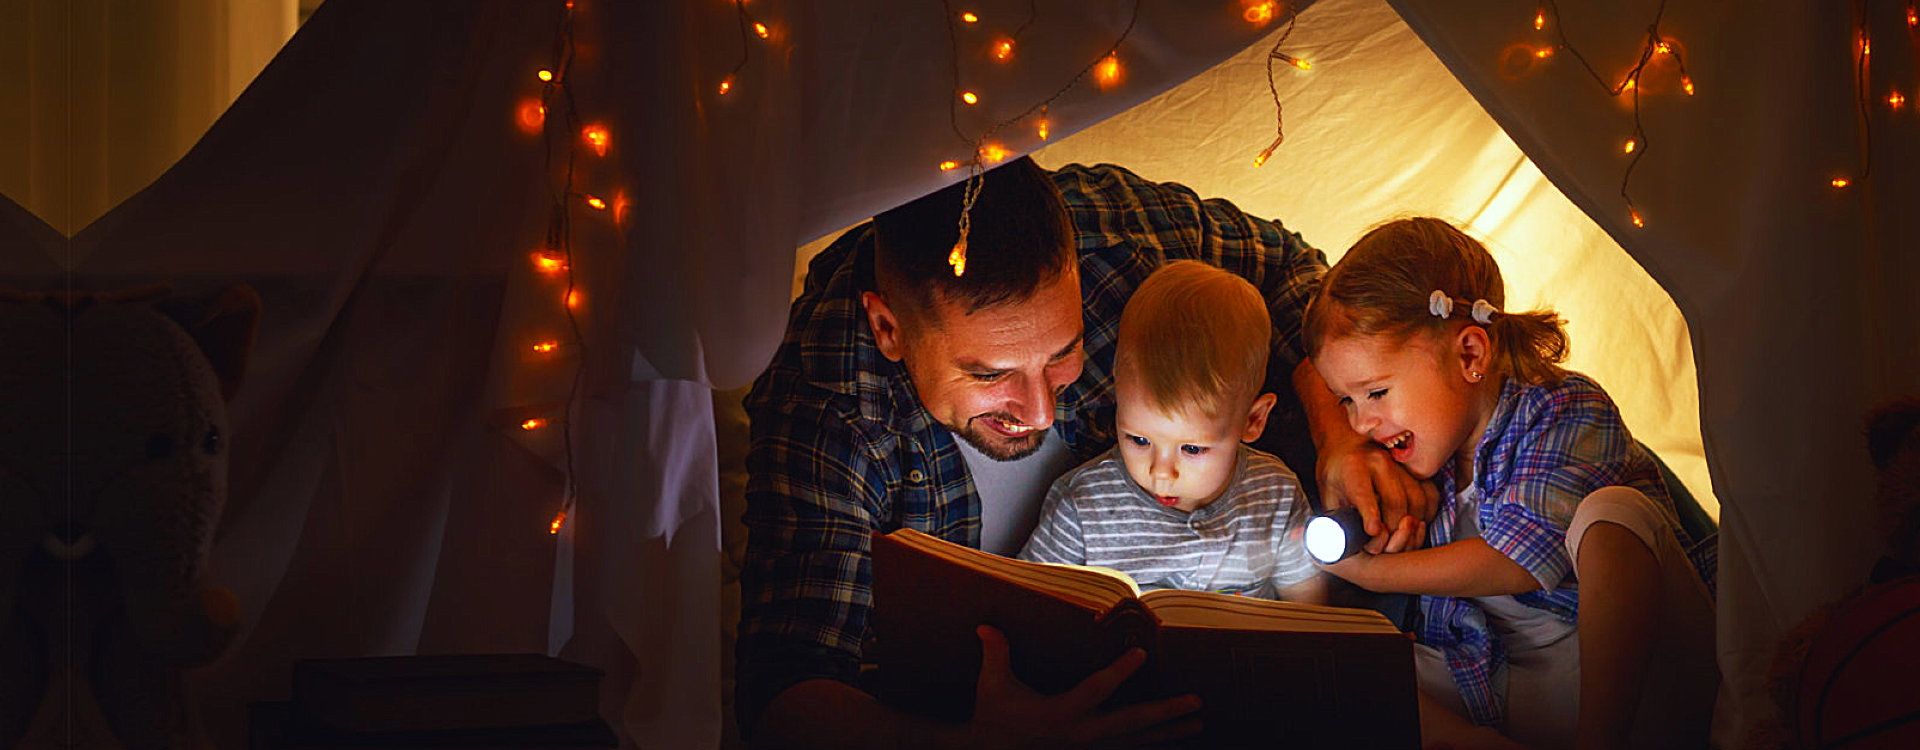 man and two children reading book